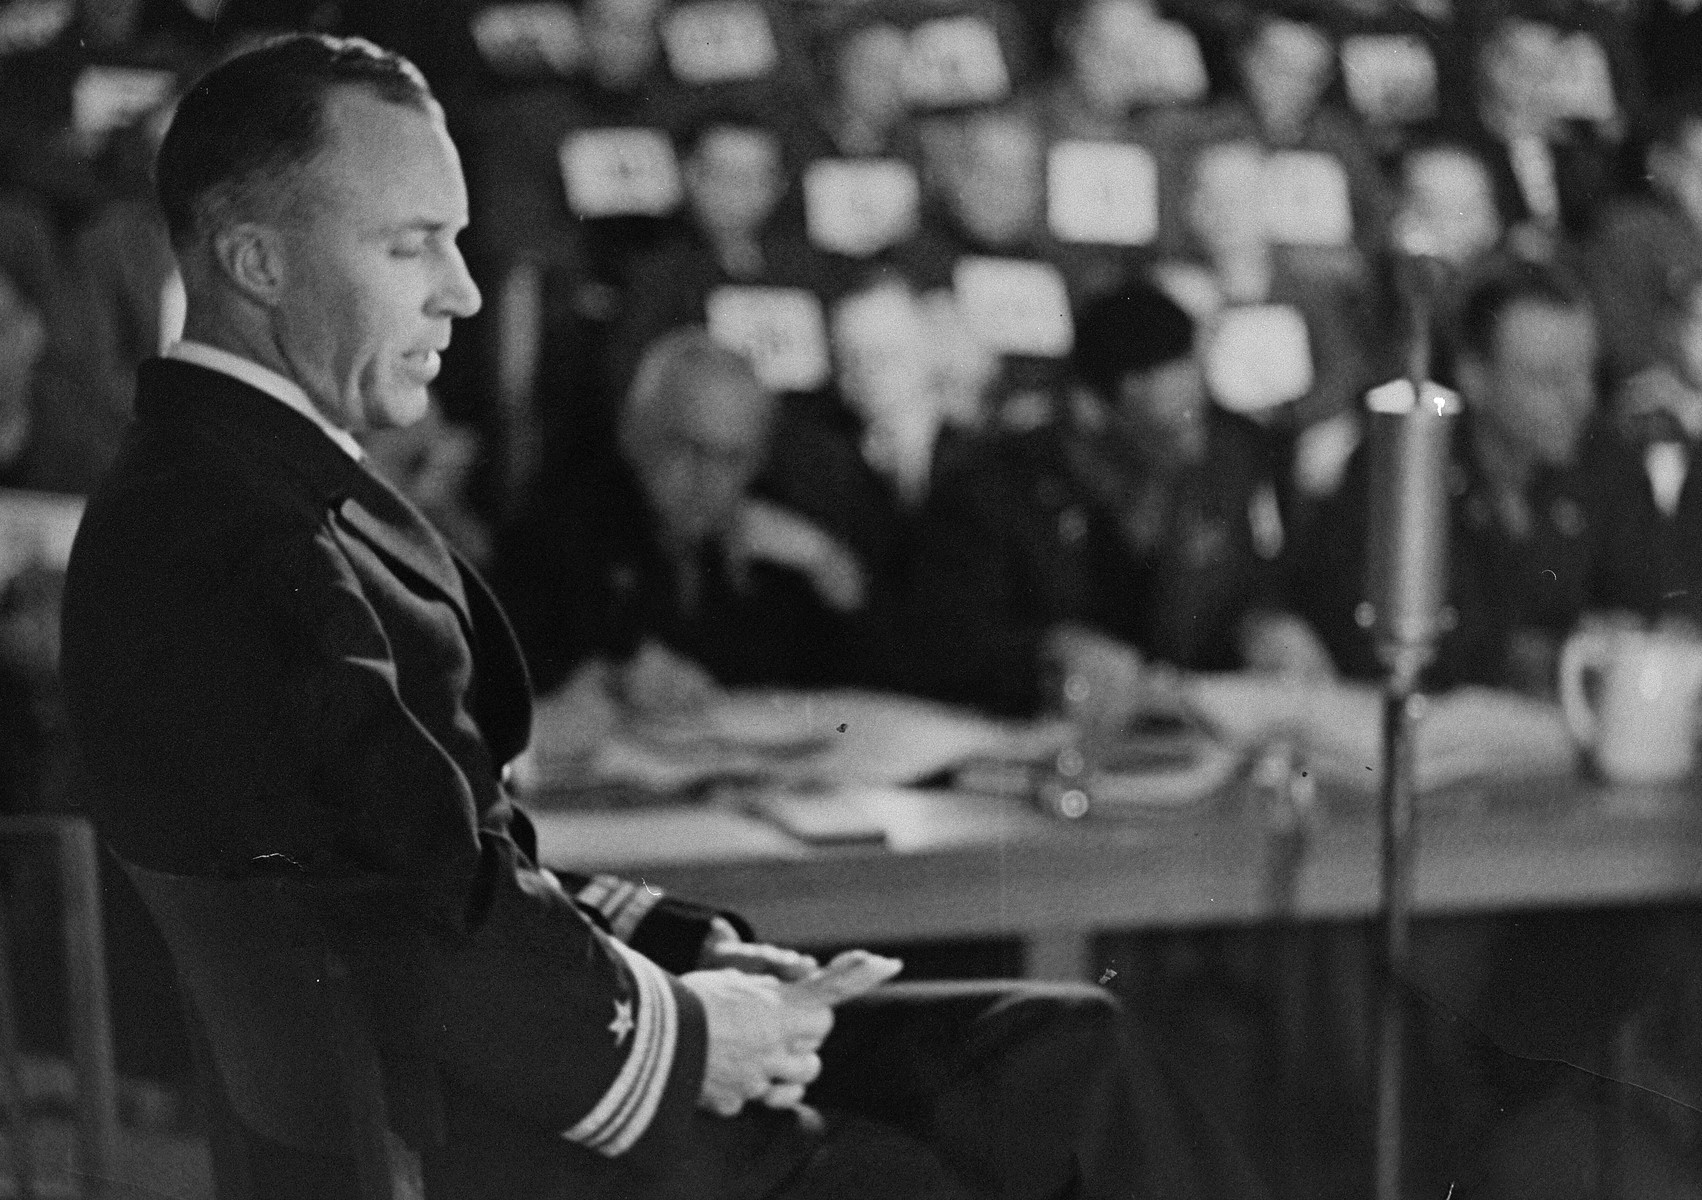 Lieutenant Jack Taylor testifies for the prosecution at the trial of 61 former camp personnel and prisoners from Mauthausen.   Lieutenant Jack Taylor (b. 1908).  Lt. Taylor served in the OSS (American Secret Service).  He was captured by the Germans and imprisoned in Mauthausen.